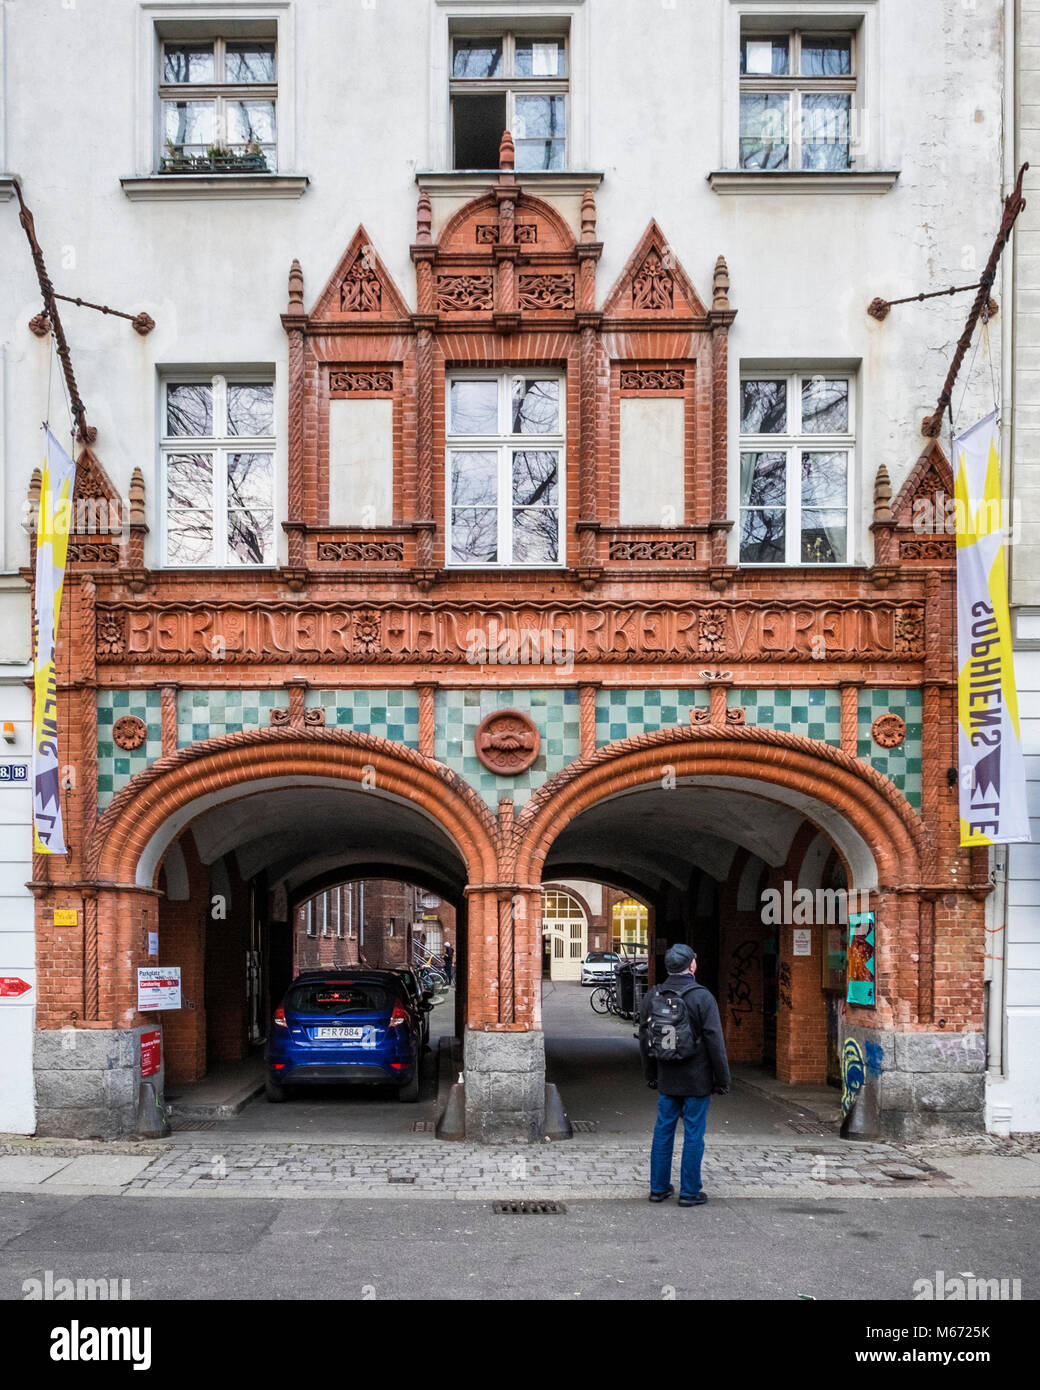 Berlin Handwerker Verein, Artisans' Association House, elaborate main entrance of historic club building in - Stock Image